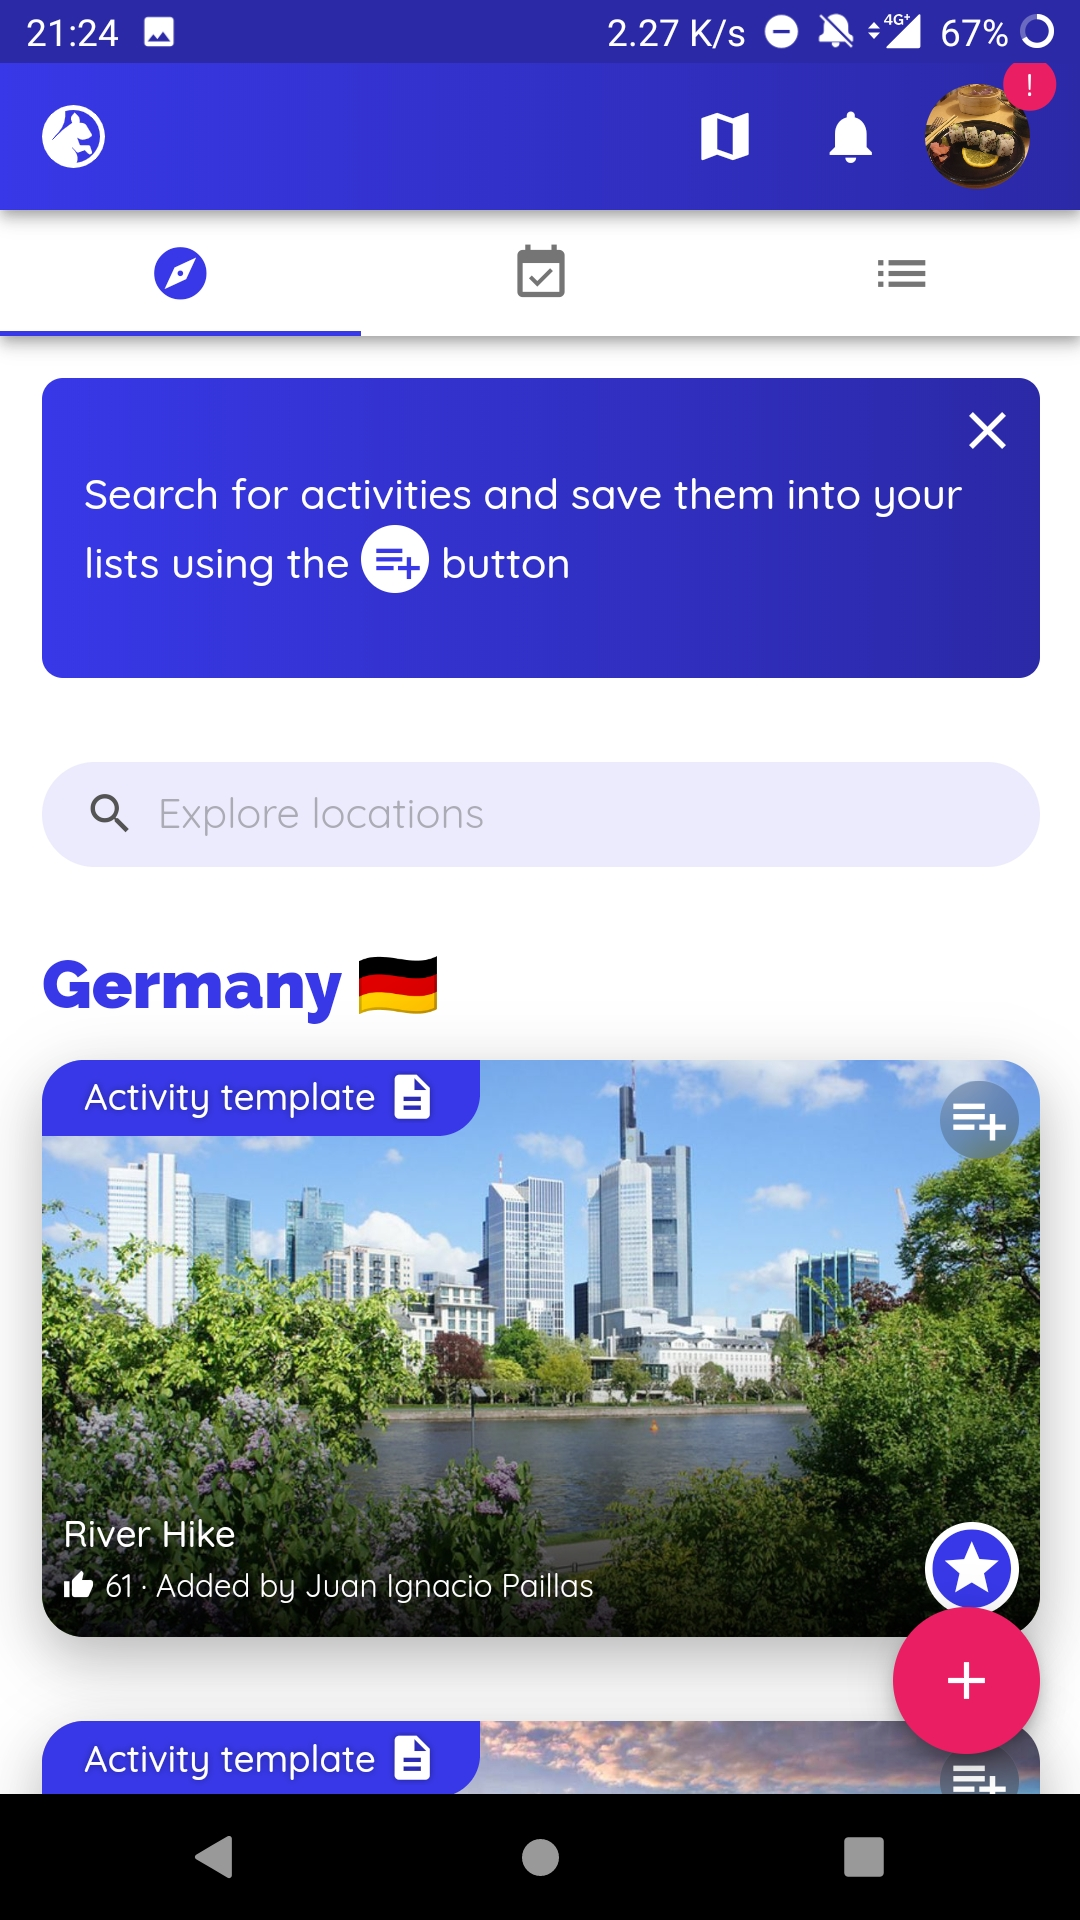 how to get tips for Solo Travelers using the Travellar app?